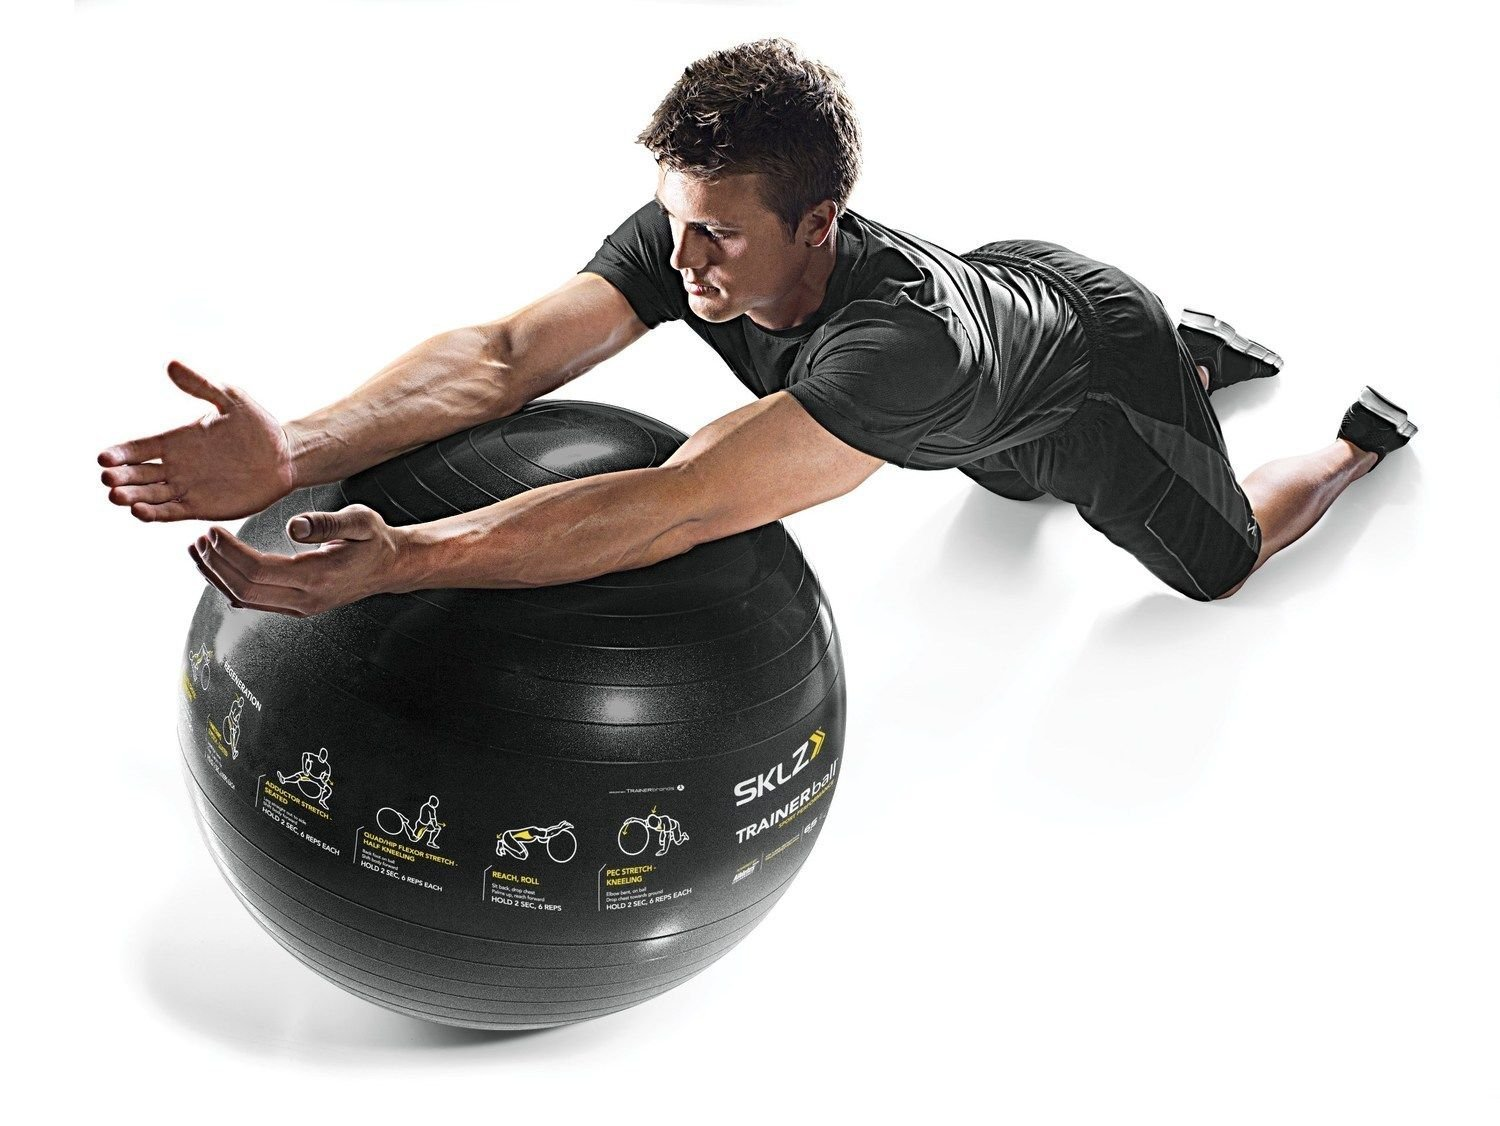 SKLZ Golf Trainer Ball Self-Guided Stability Balls